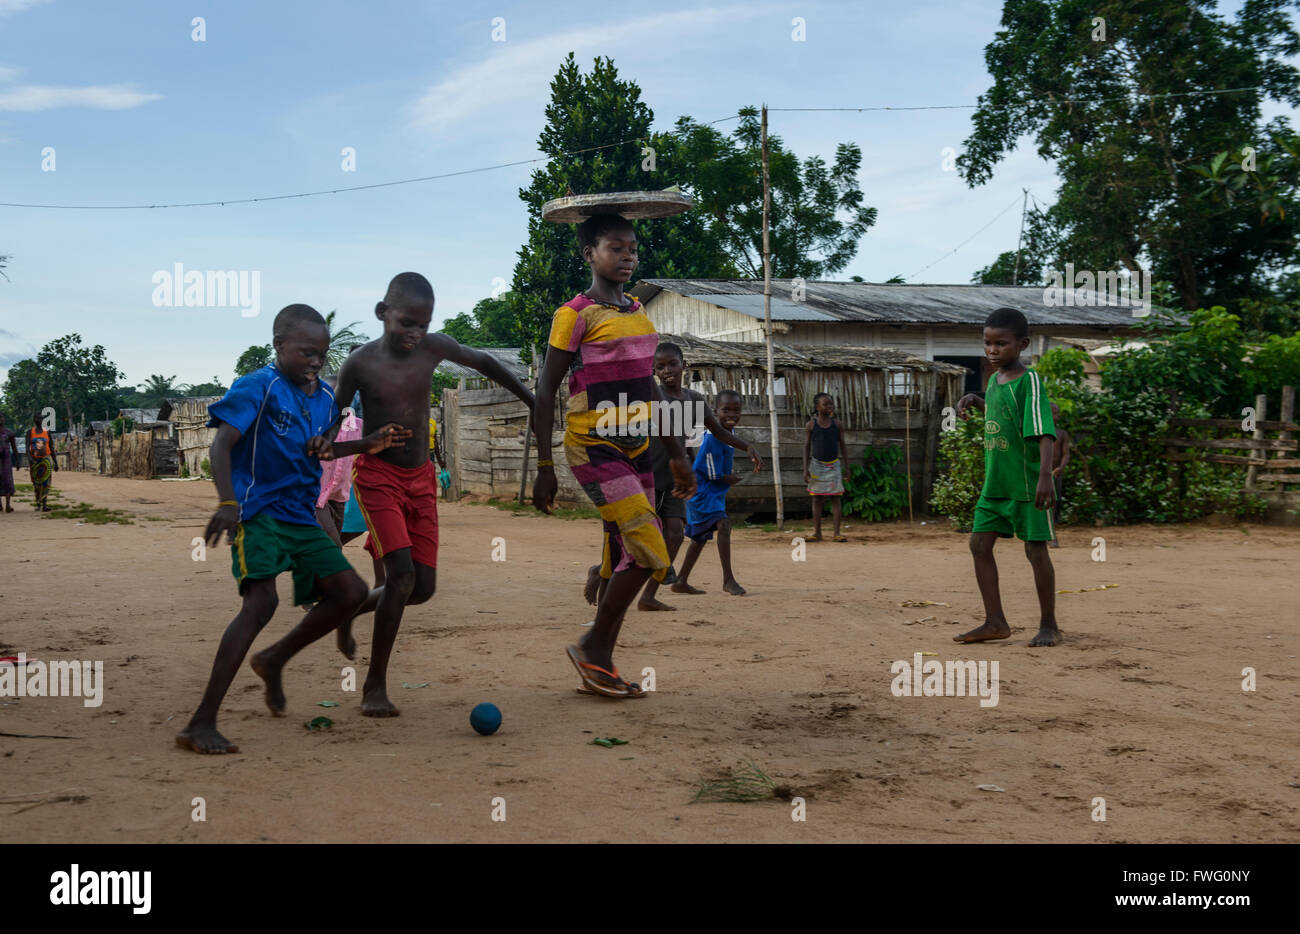 Street football in Bayanga, Central African Republic, Africa - Stock Image